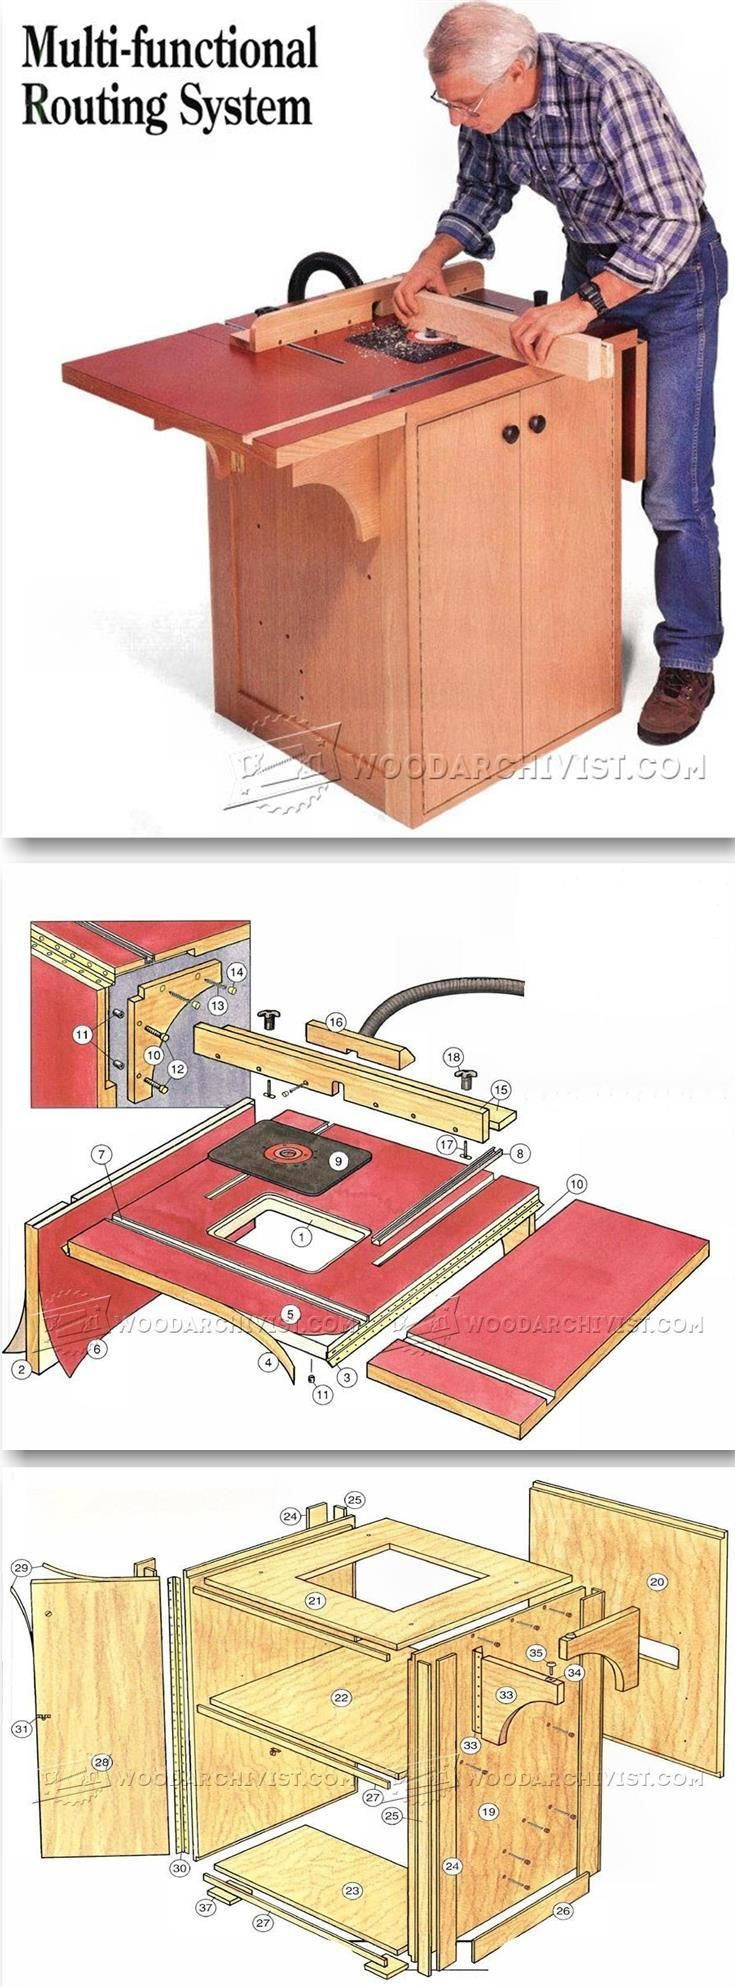 Extension Router Table Plans - Router Tips, Jigs and Fixtures | WoodArchivist.com